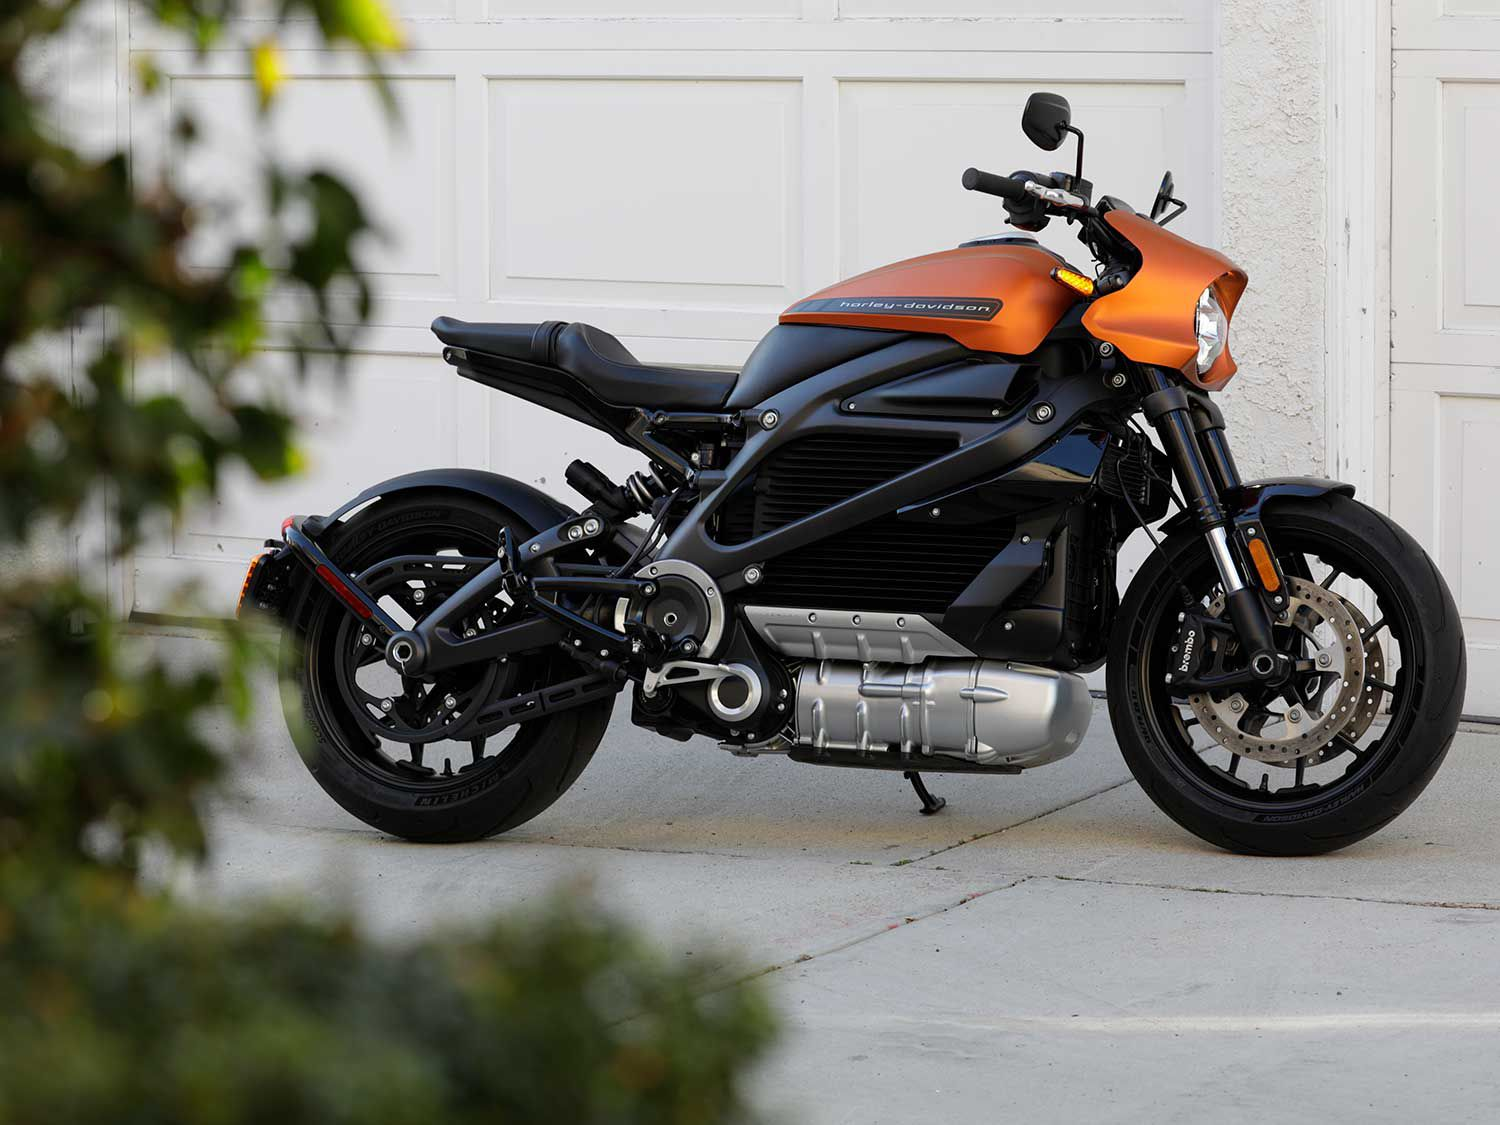 "<a  href=""https://www.motorcyclistonline.com/story/reviews/2020-harley-davidson-livewire-review-mc-commute/"">2020 Harley-Davidson LiveWire <em>MC Commute</em> Review</a>"